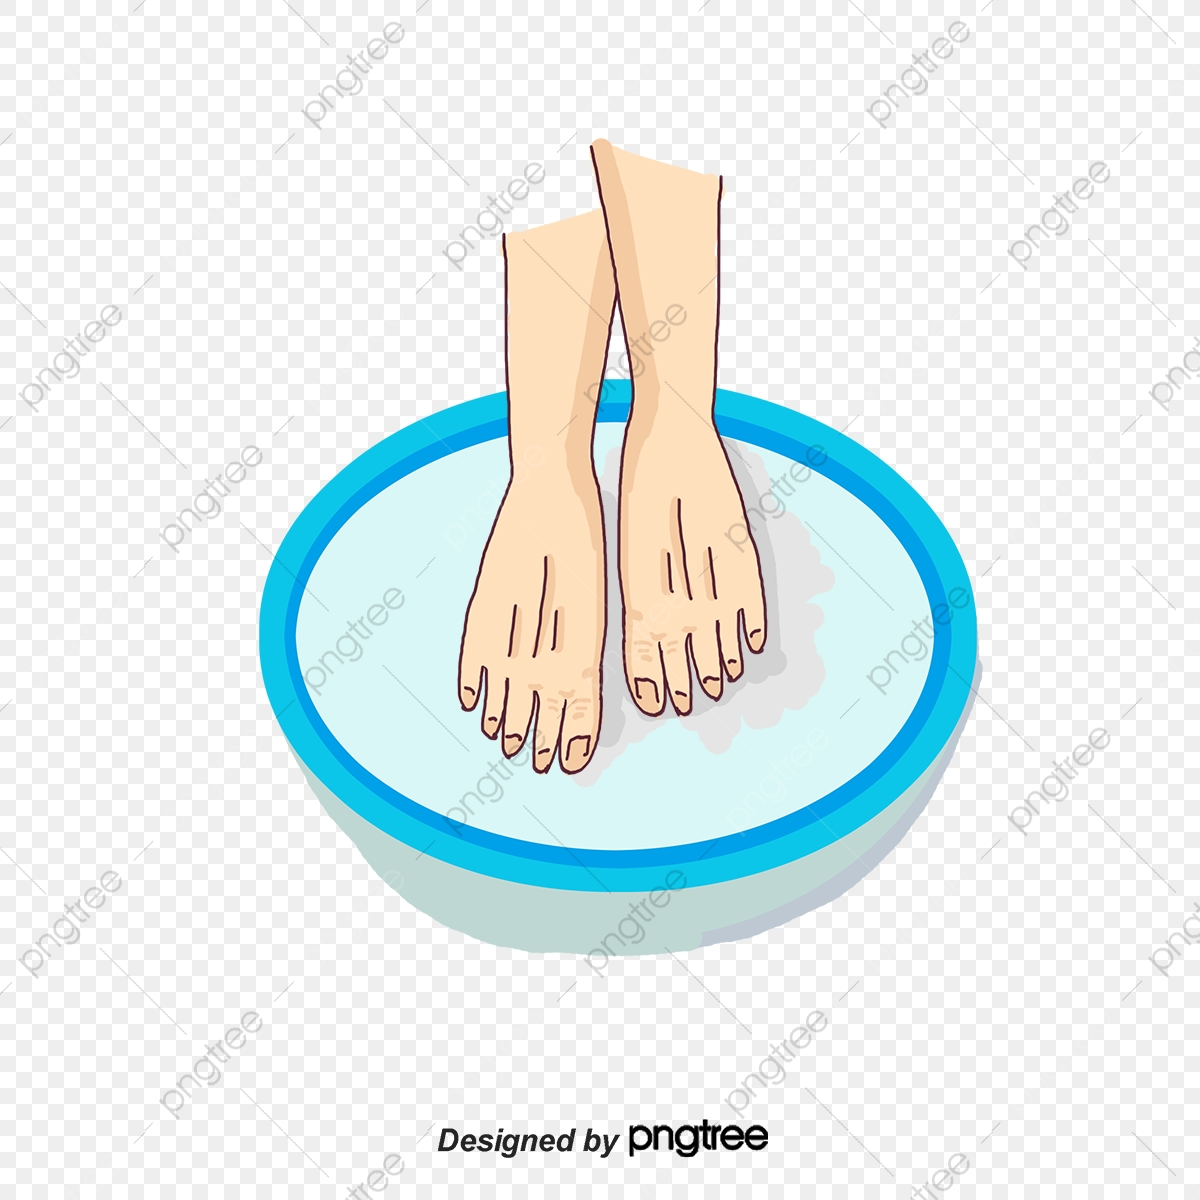 vector feet beauty beauty vector footbath foot png transparent clipart image and psd file for free download https pngtree com freepng vector feet beauty 1359908 html